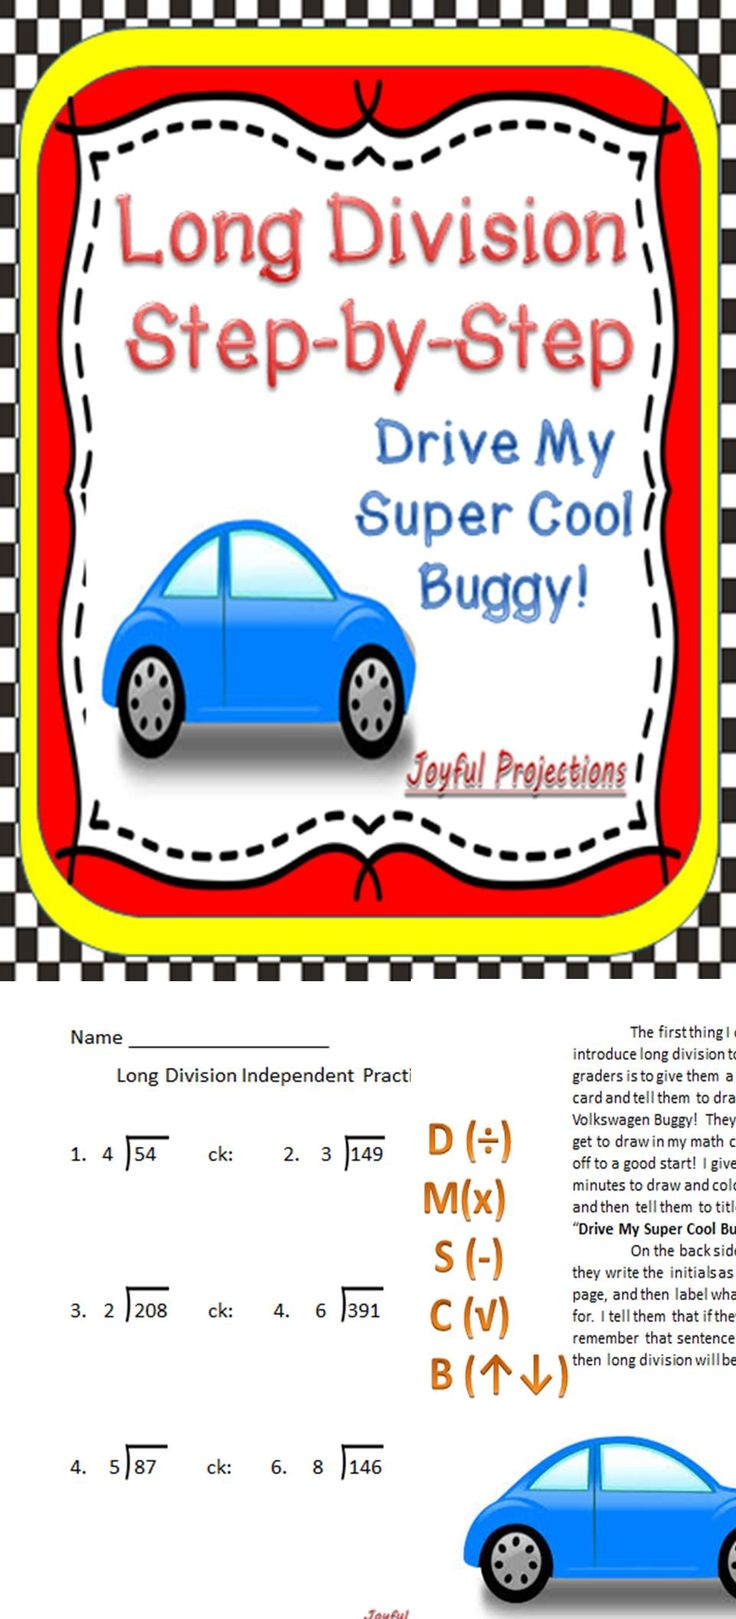 Worksheet Long Division Made Easy For Kids 1000 images about time for school on pinterest